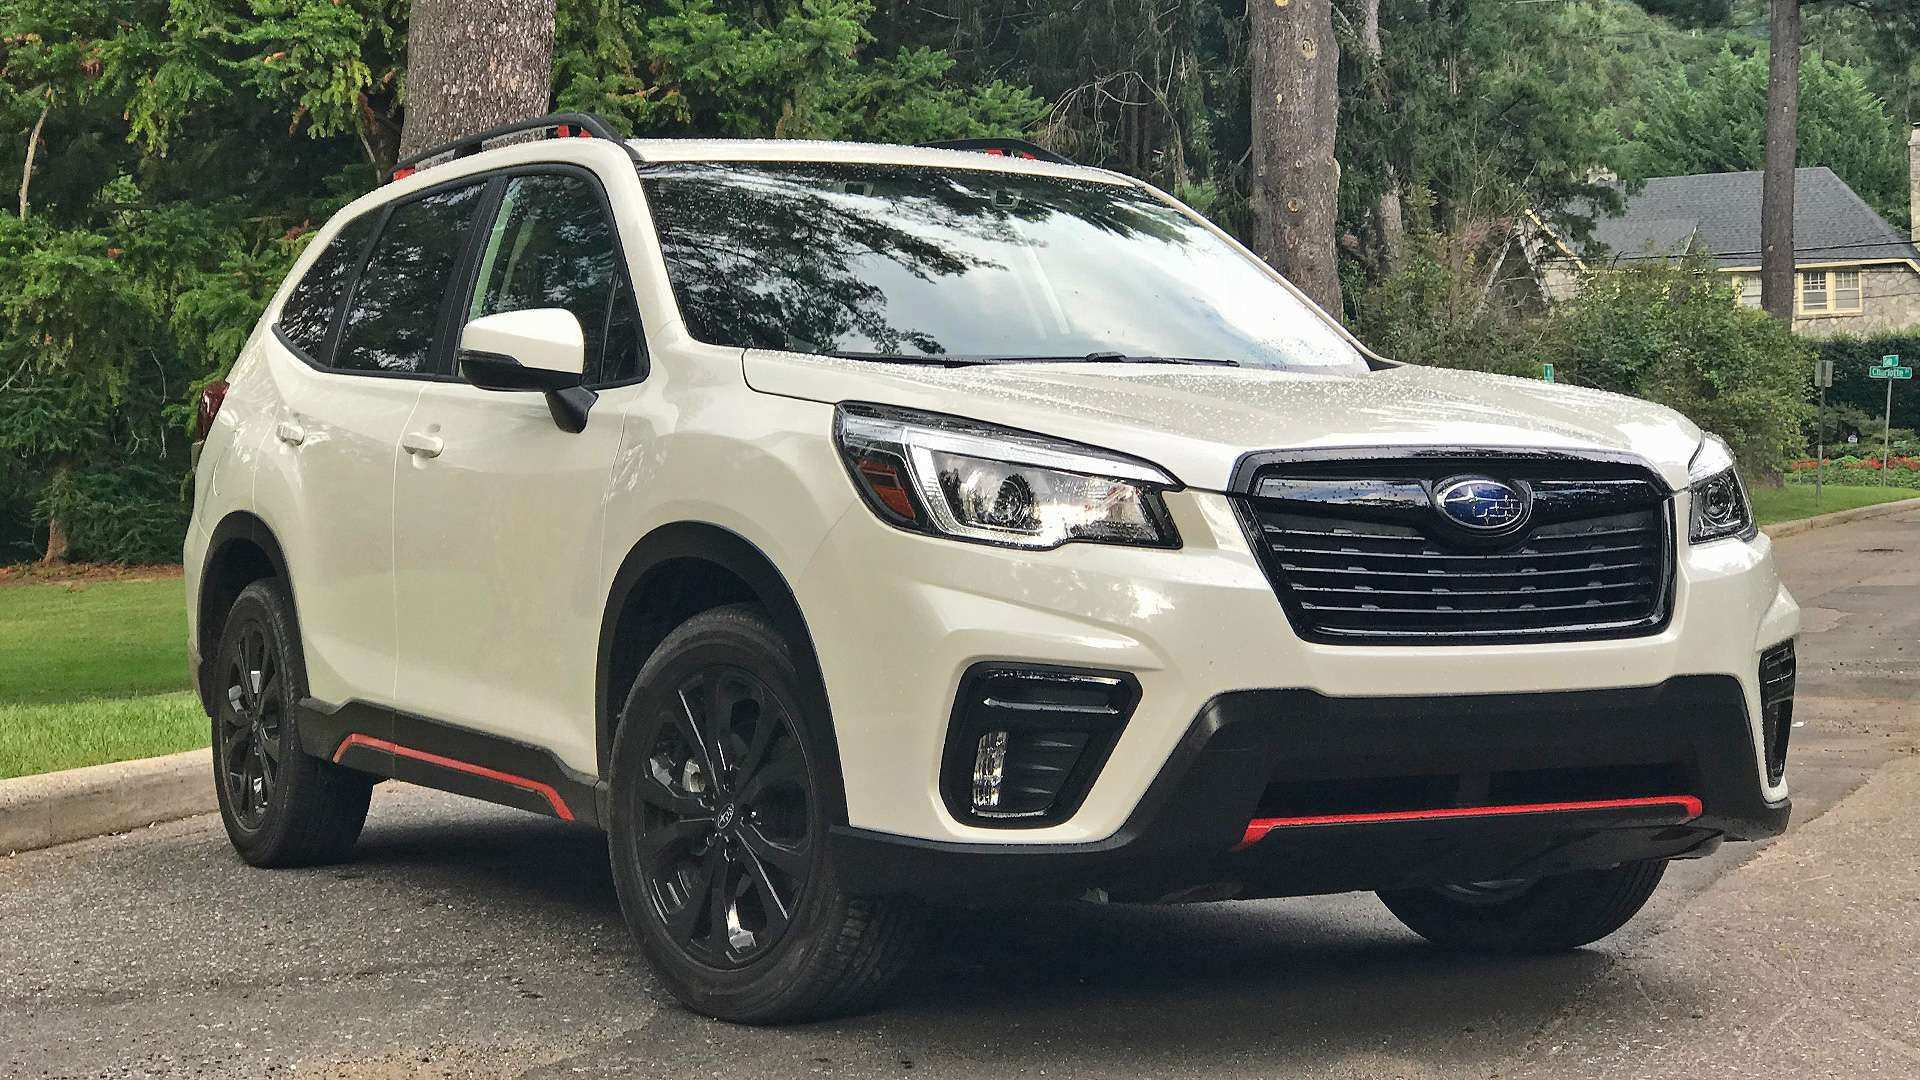 63 The Best Subaru Forester 2019 Ground Clearance Performance